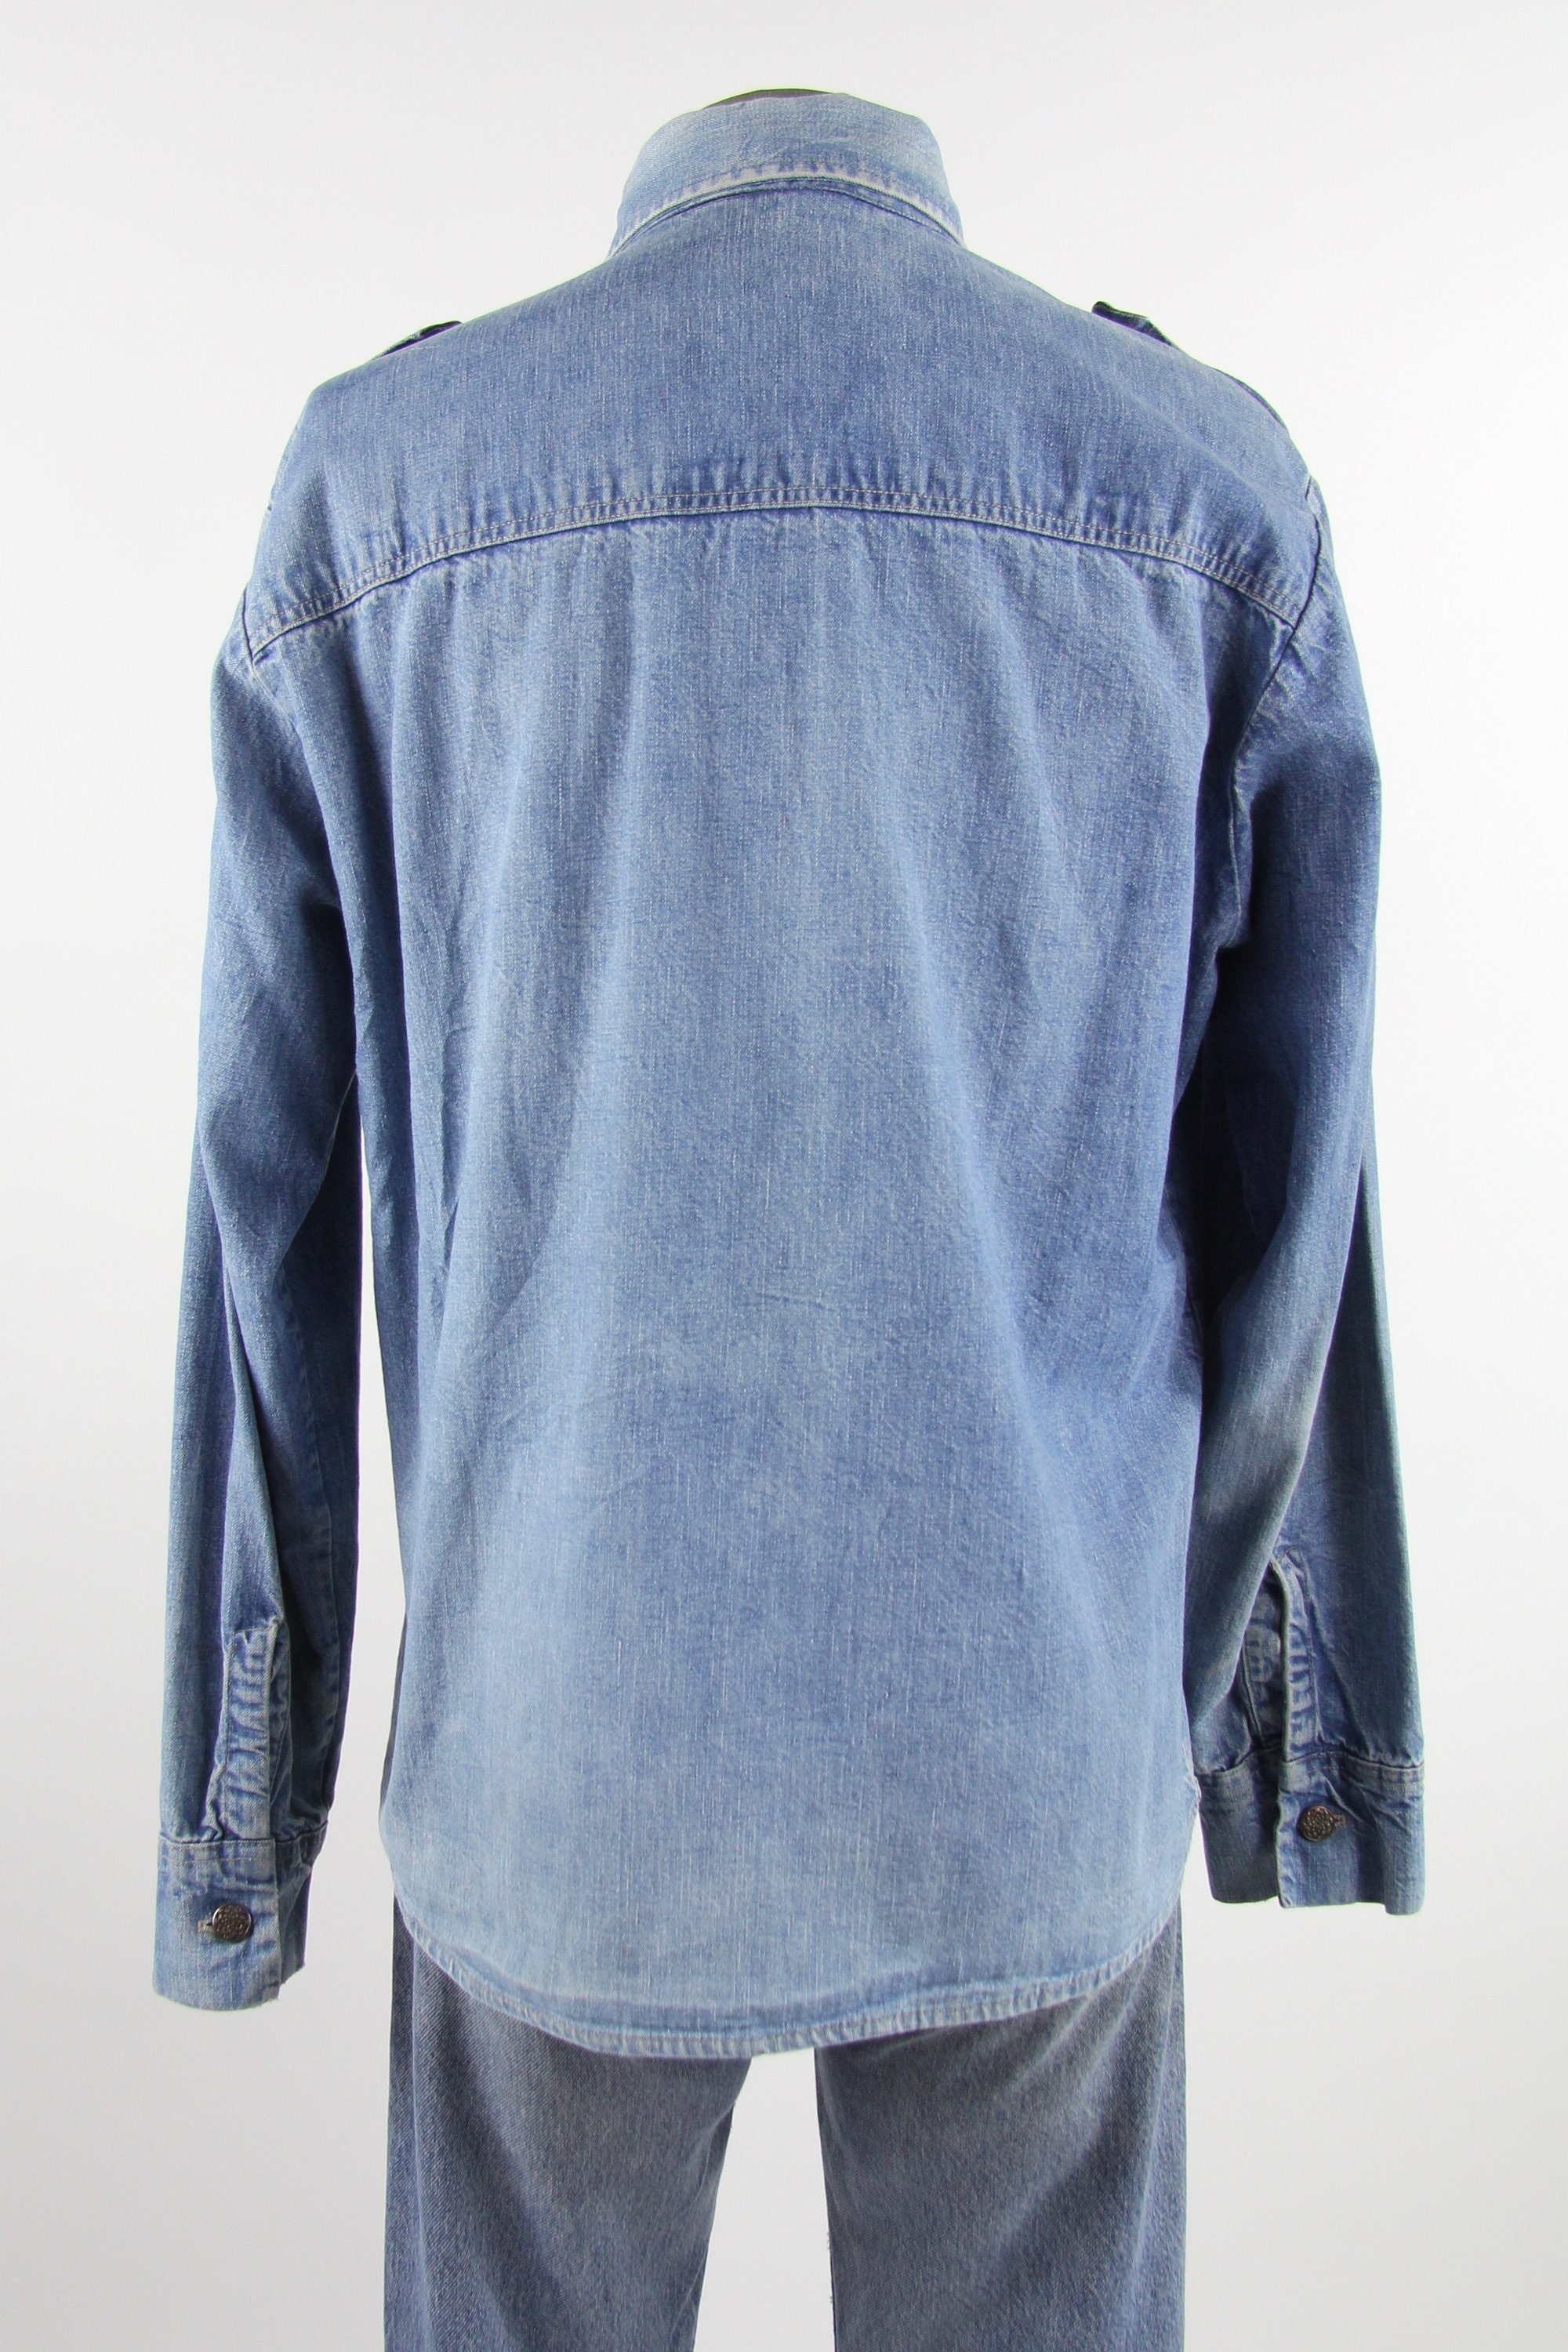 0ba559b68d2 Men s Chambray Shirt Light Wash Denim Button Up 70 s Jean Shirt Size ...